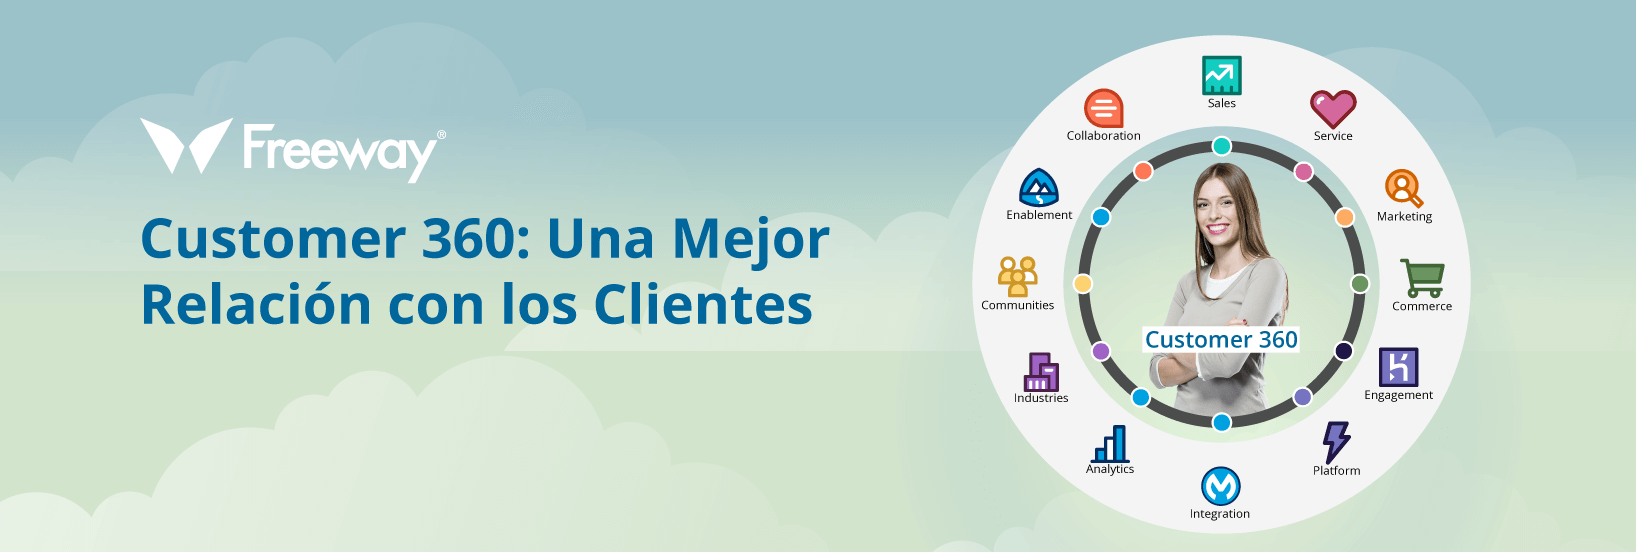 Saleforce-Customer-360-Implementacion-Freeway